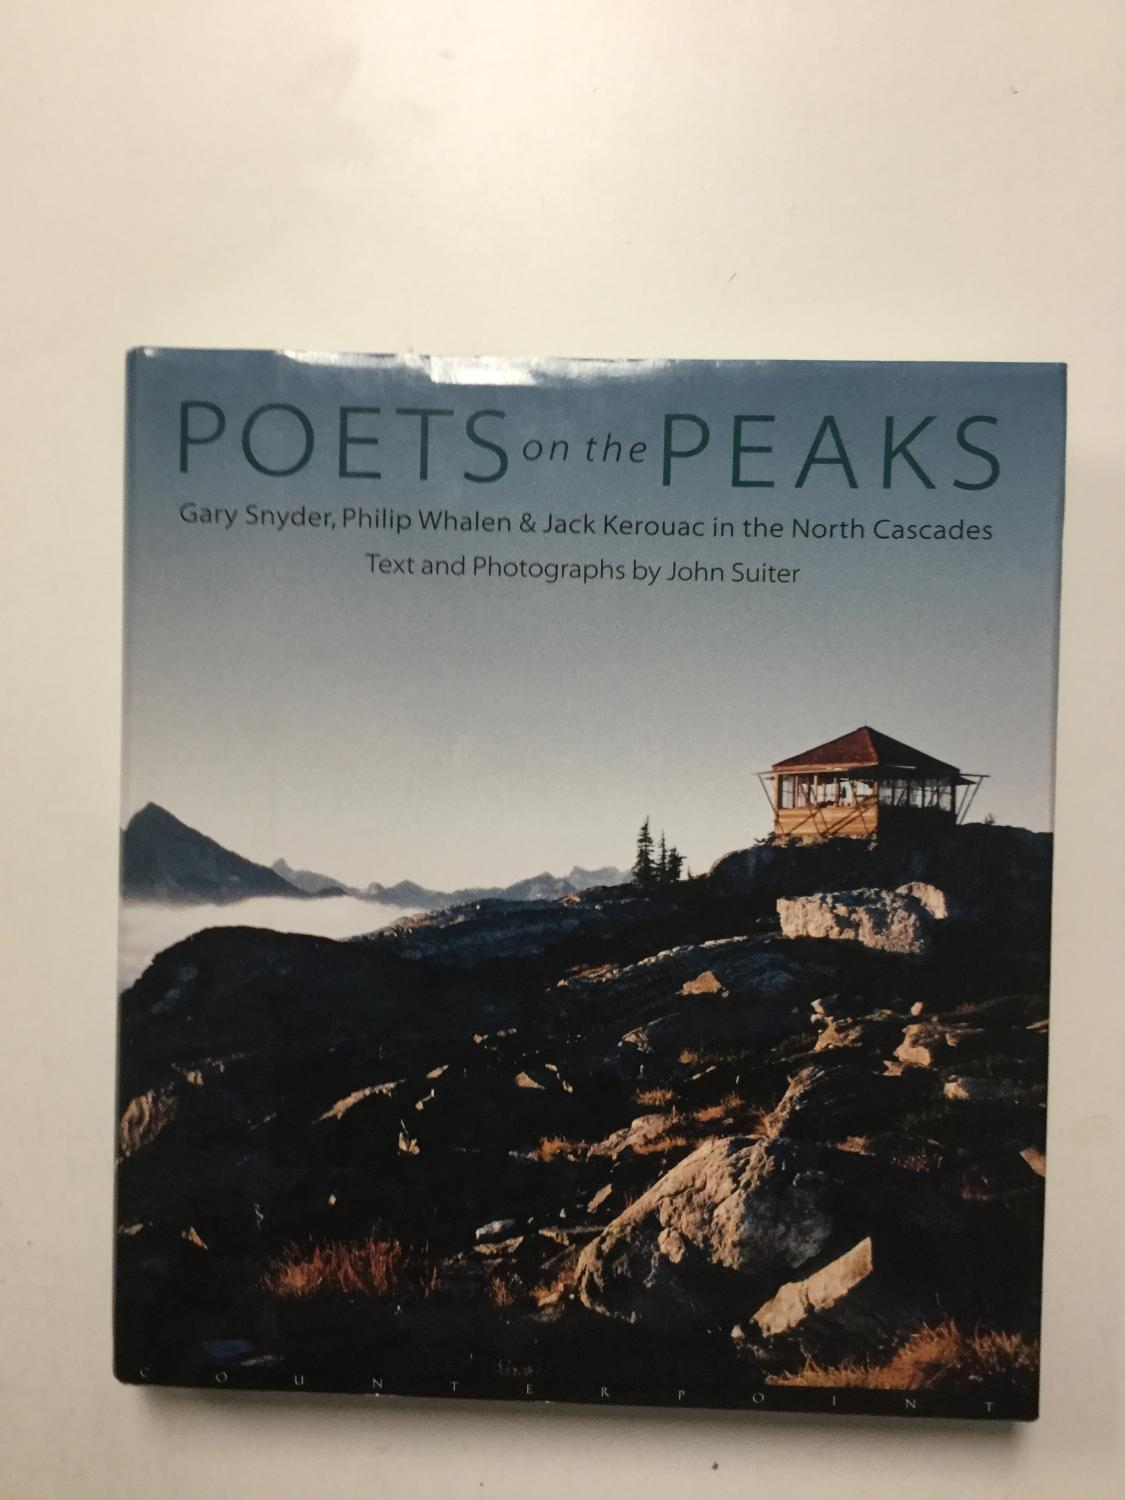 Poets_on_the_Peaks_Gary_Snyder,_Philip_Whalen_&_Jack_Kerouac_in_the_North_Cascades_Suiter,_John_[Near_Fine]_[Hardcover]